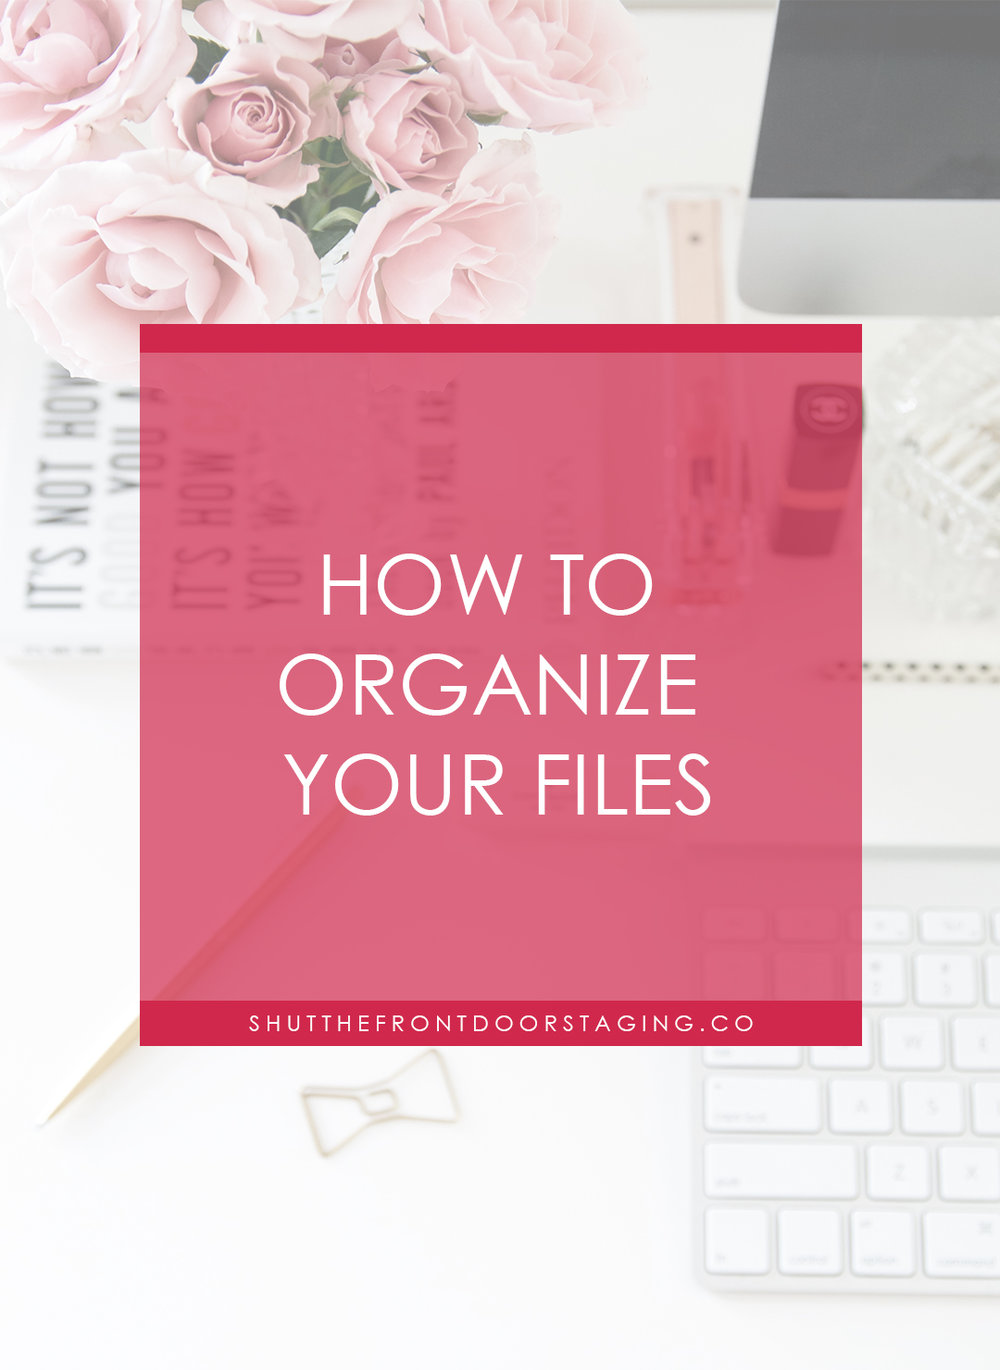 how to organize your files v2.jpg